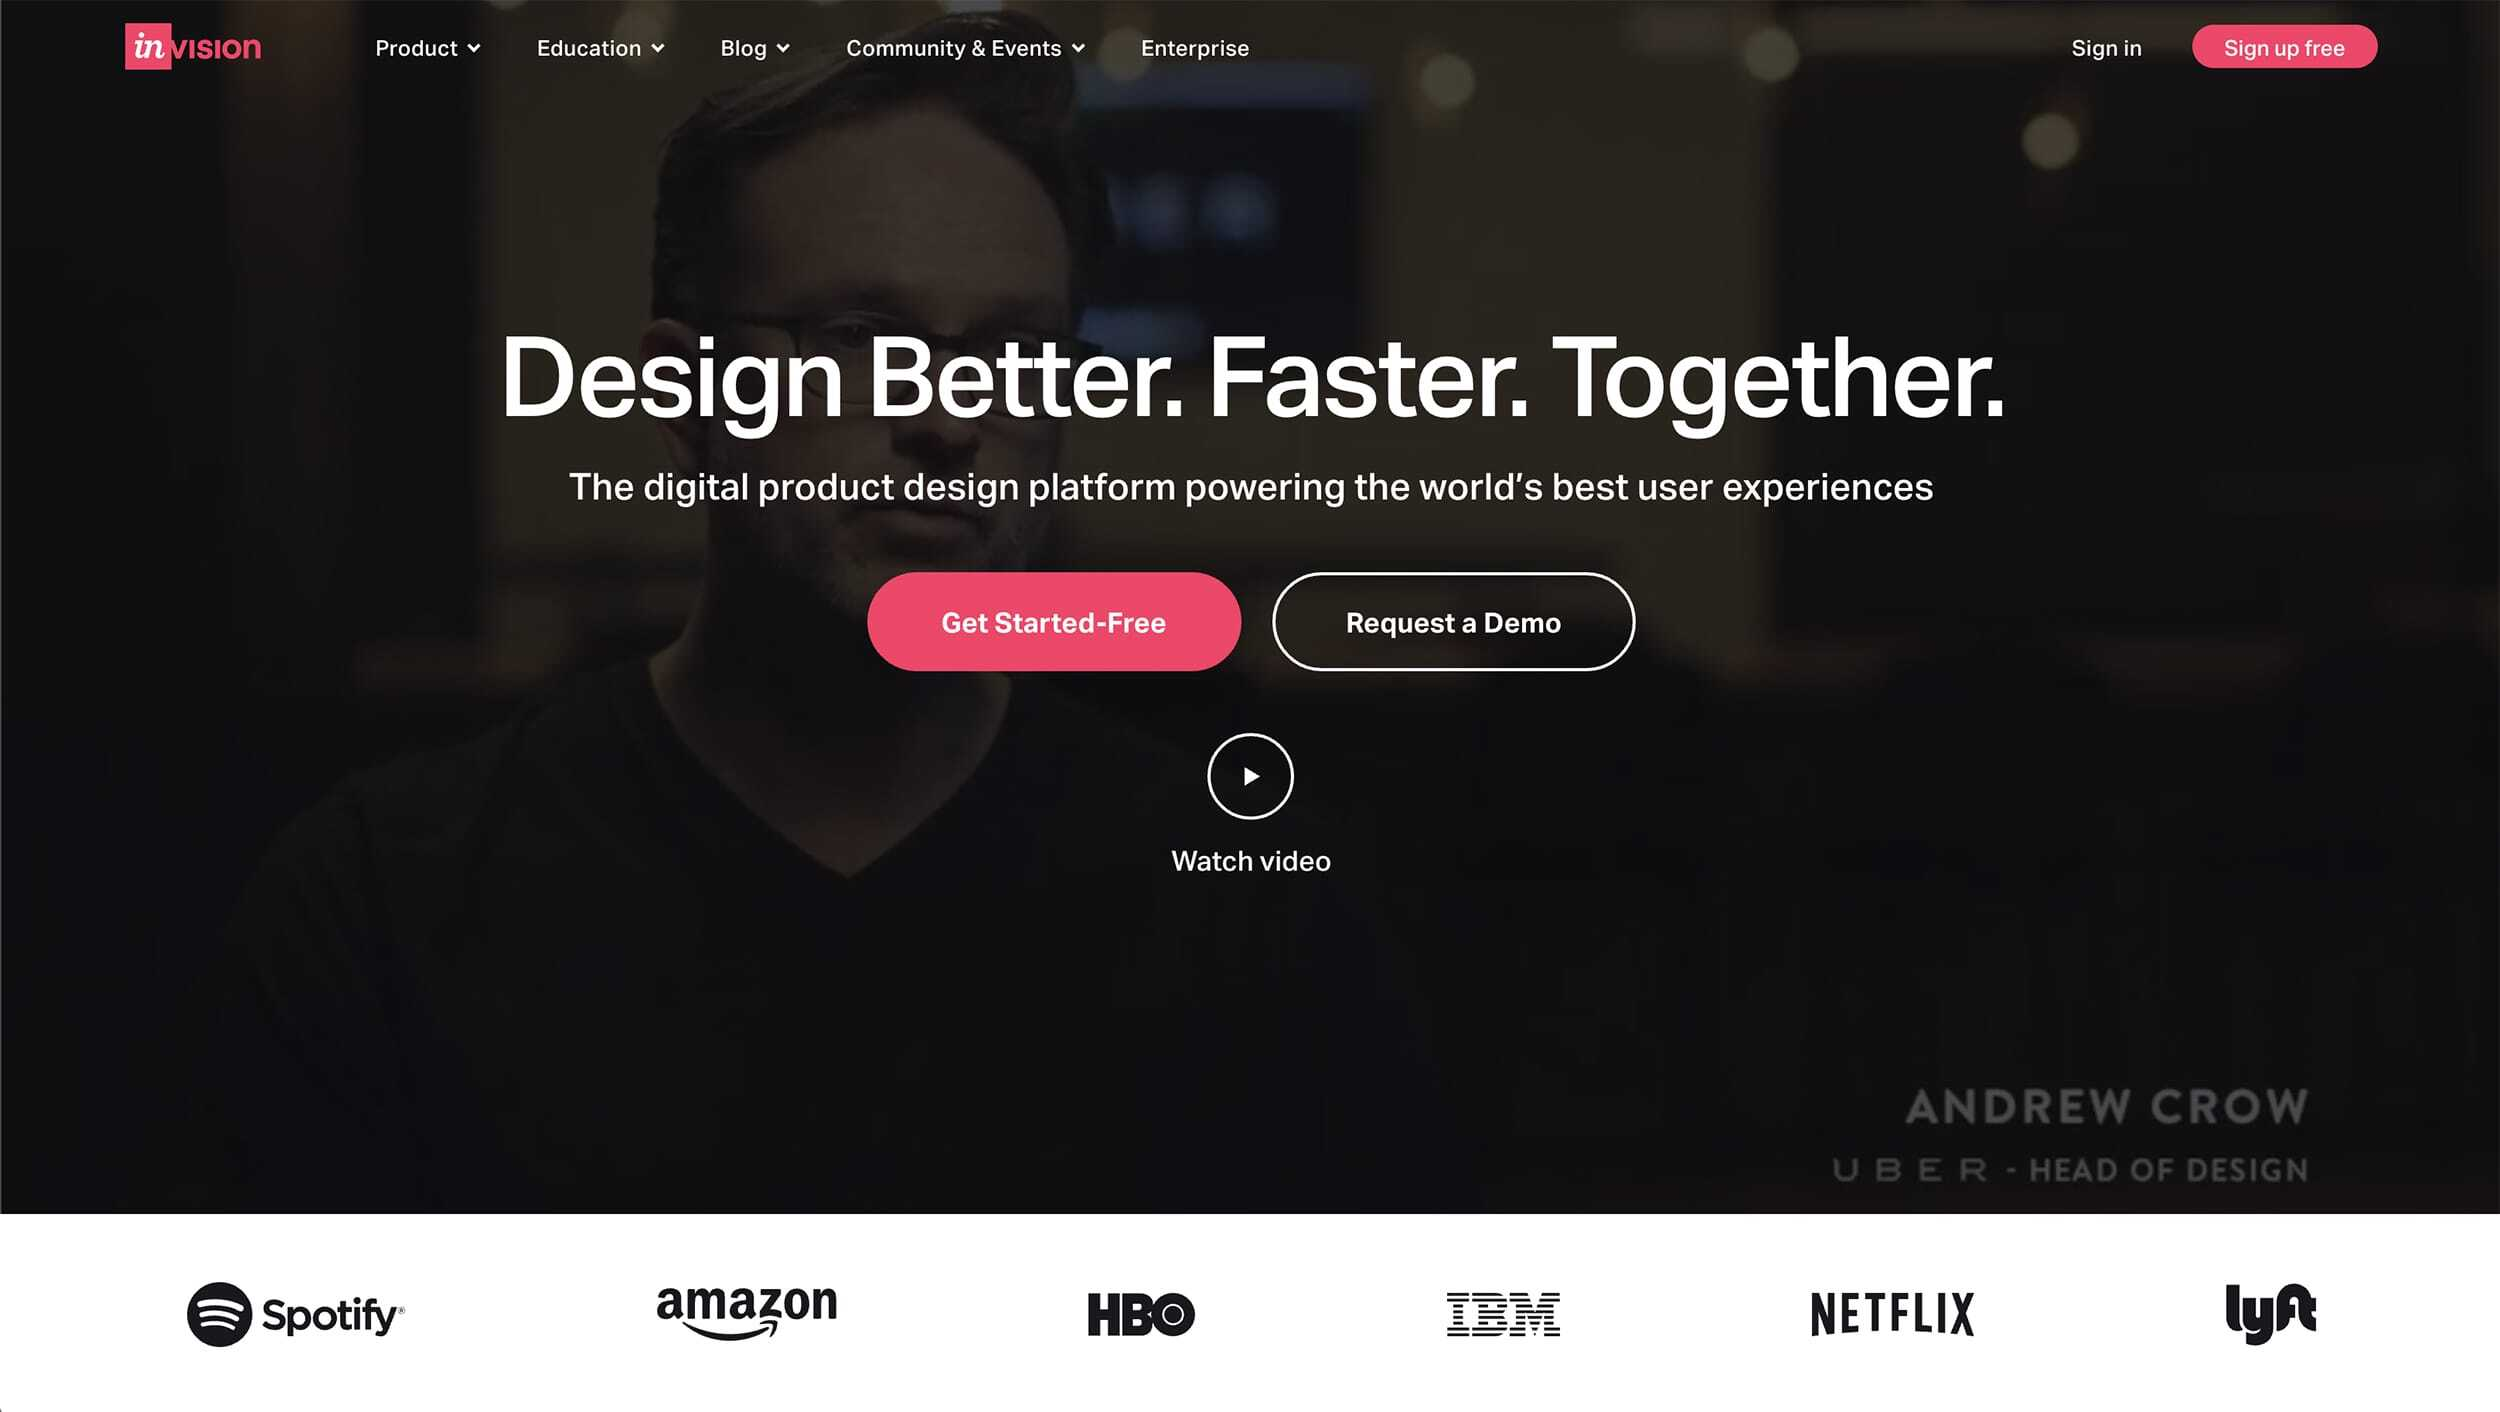 Invision Website Landing Page